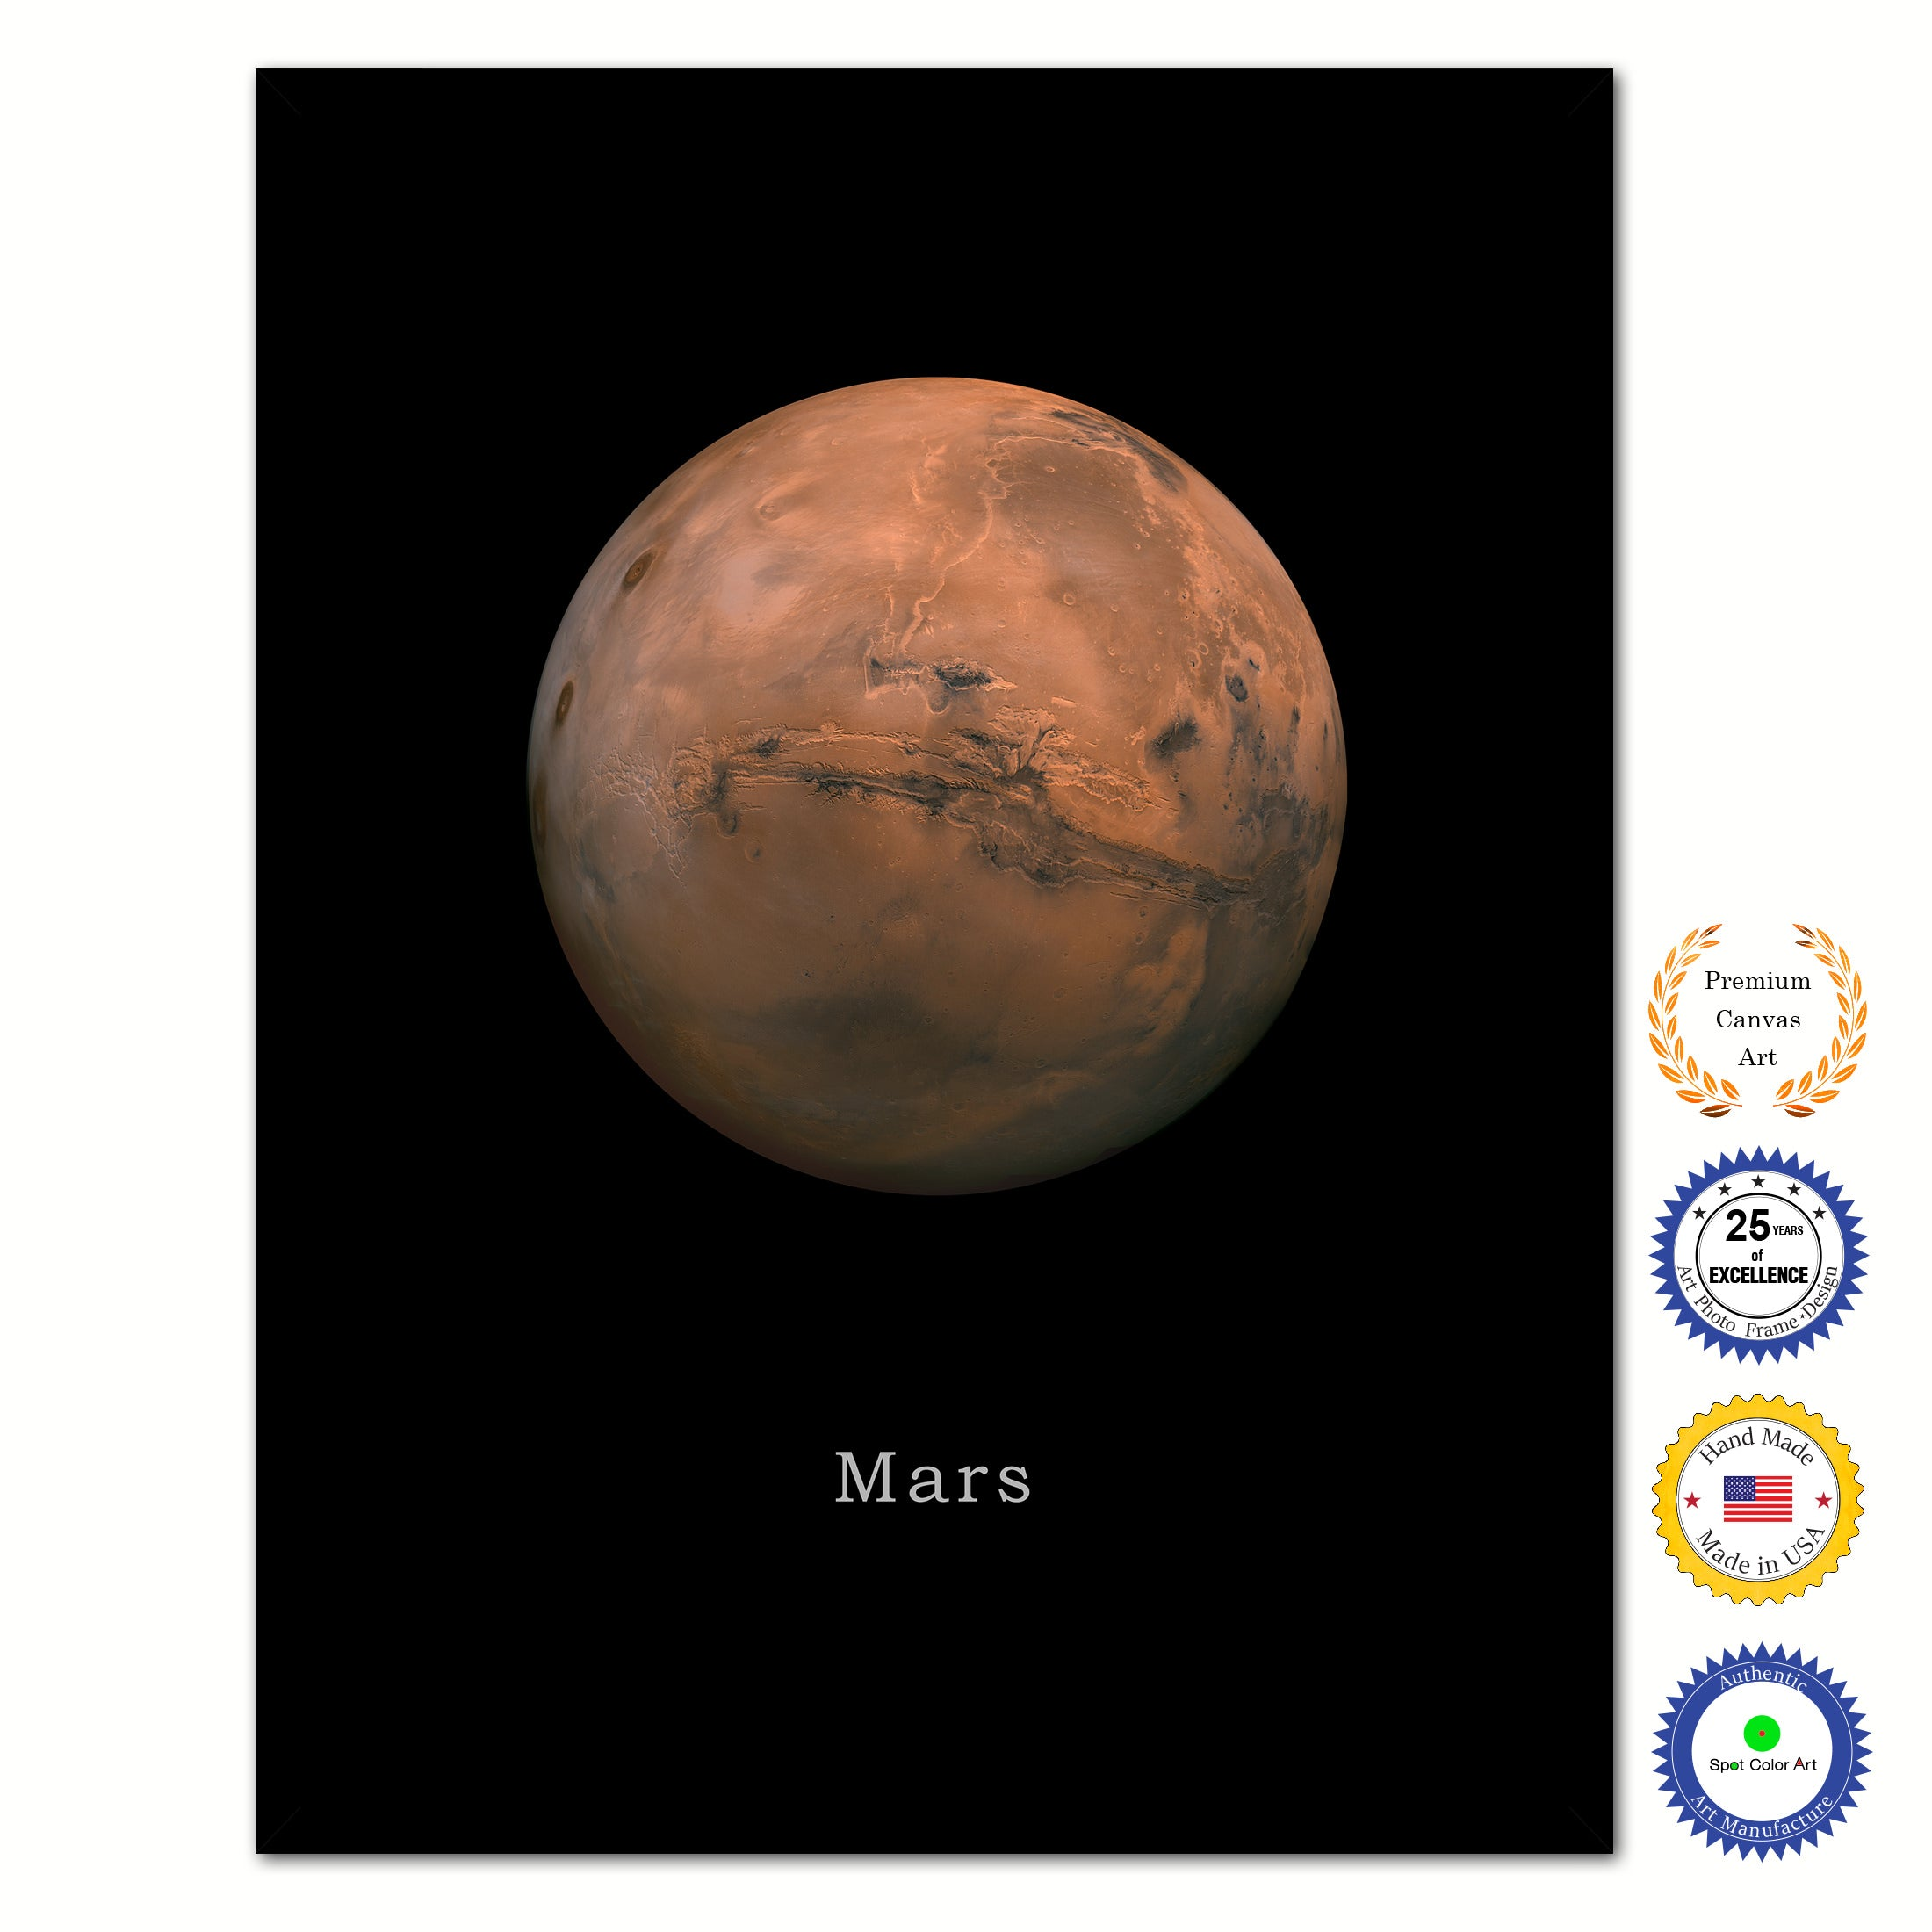 Mars Print on Canvas Planets of Solar System Black Custom Framed Art Home Decor Wall Office Decoration